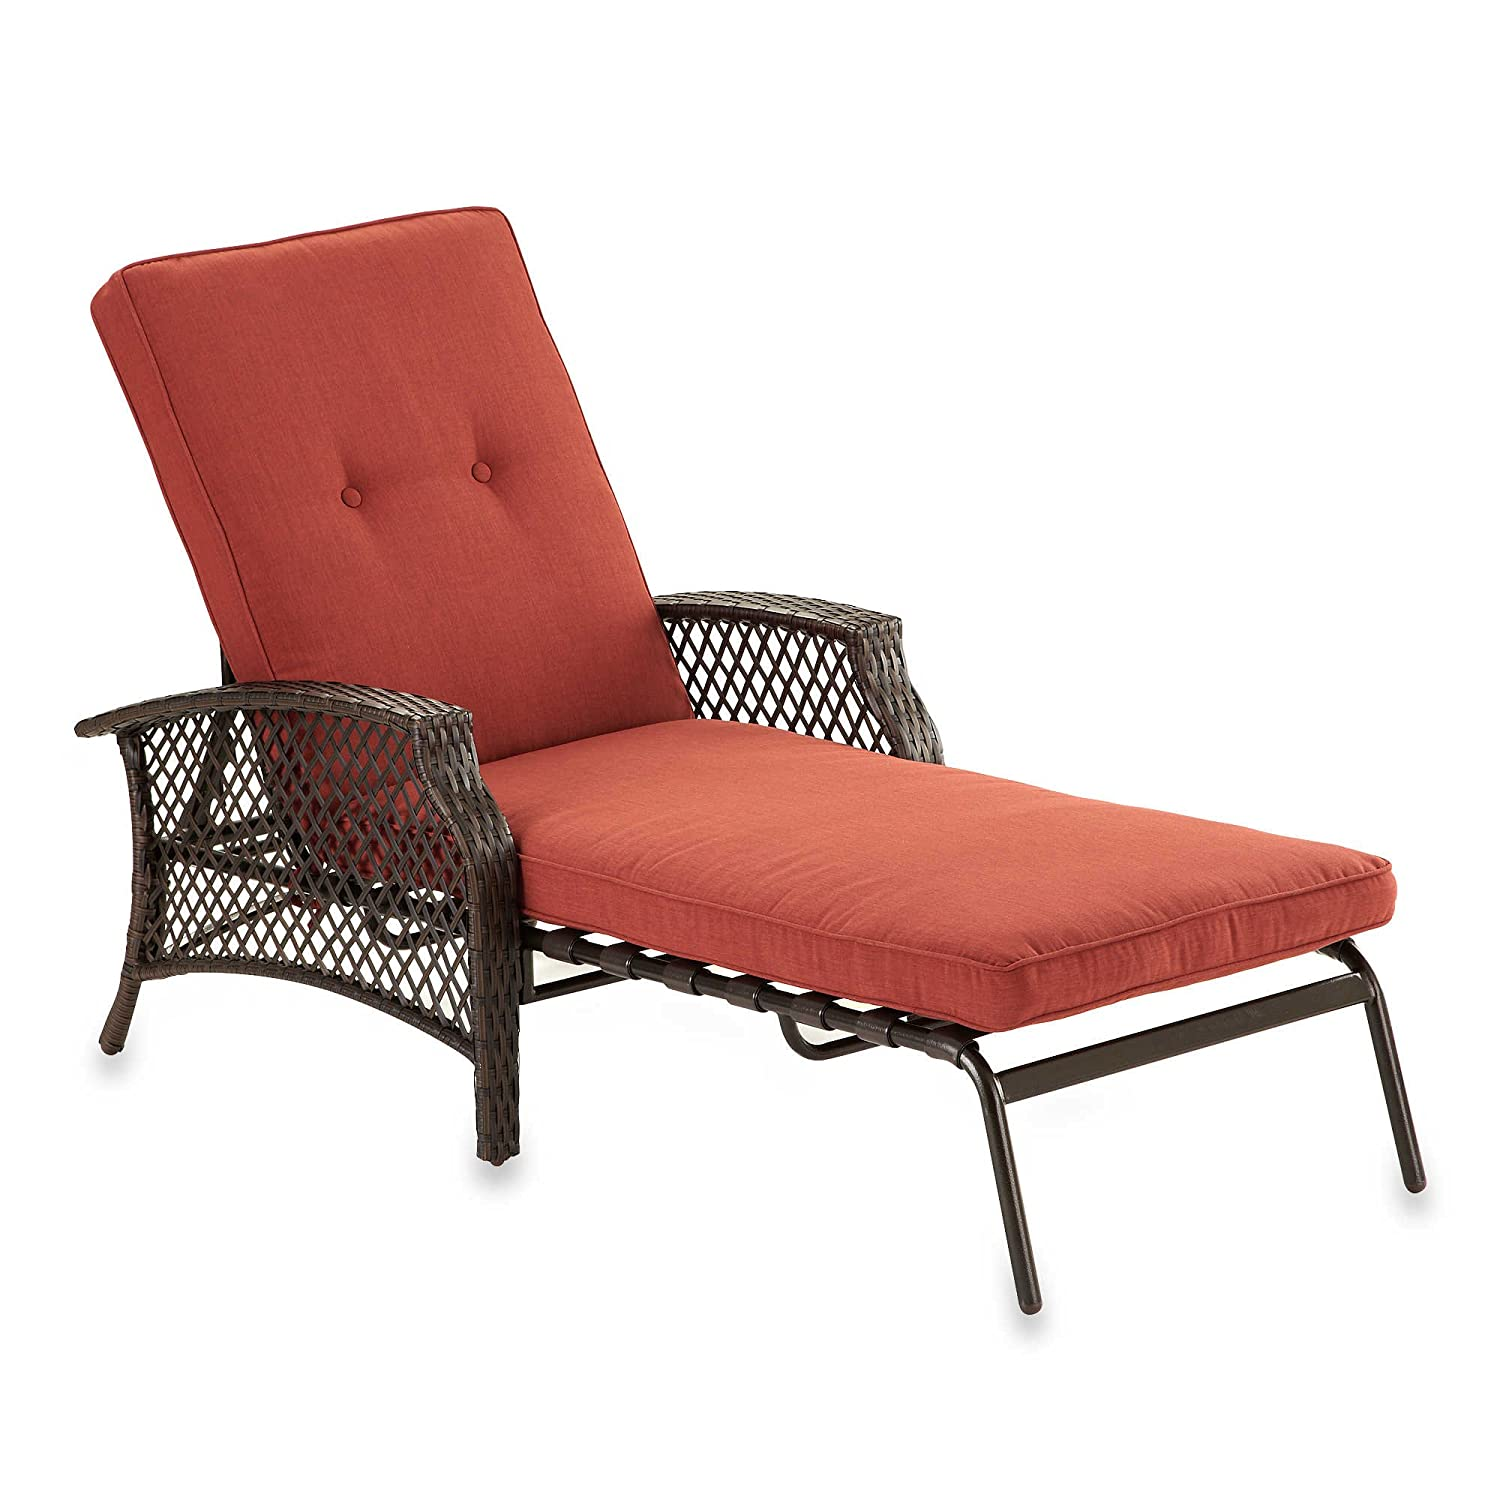 best of outdoor chaise lounge chair. Black Bedroom Furniture Sets. Home Design Ideas